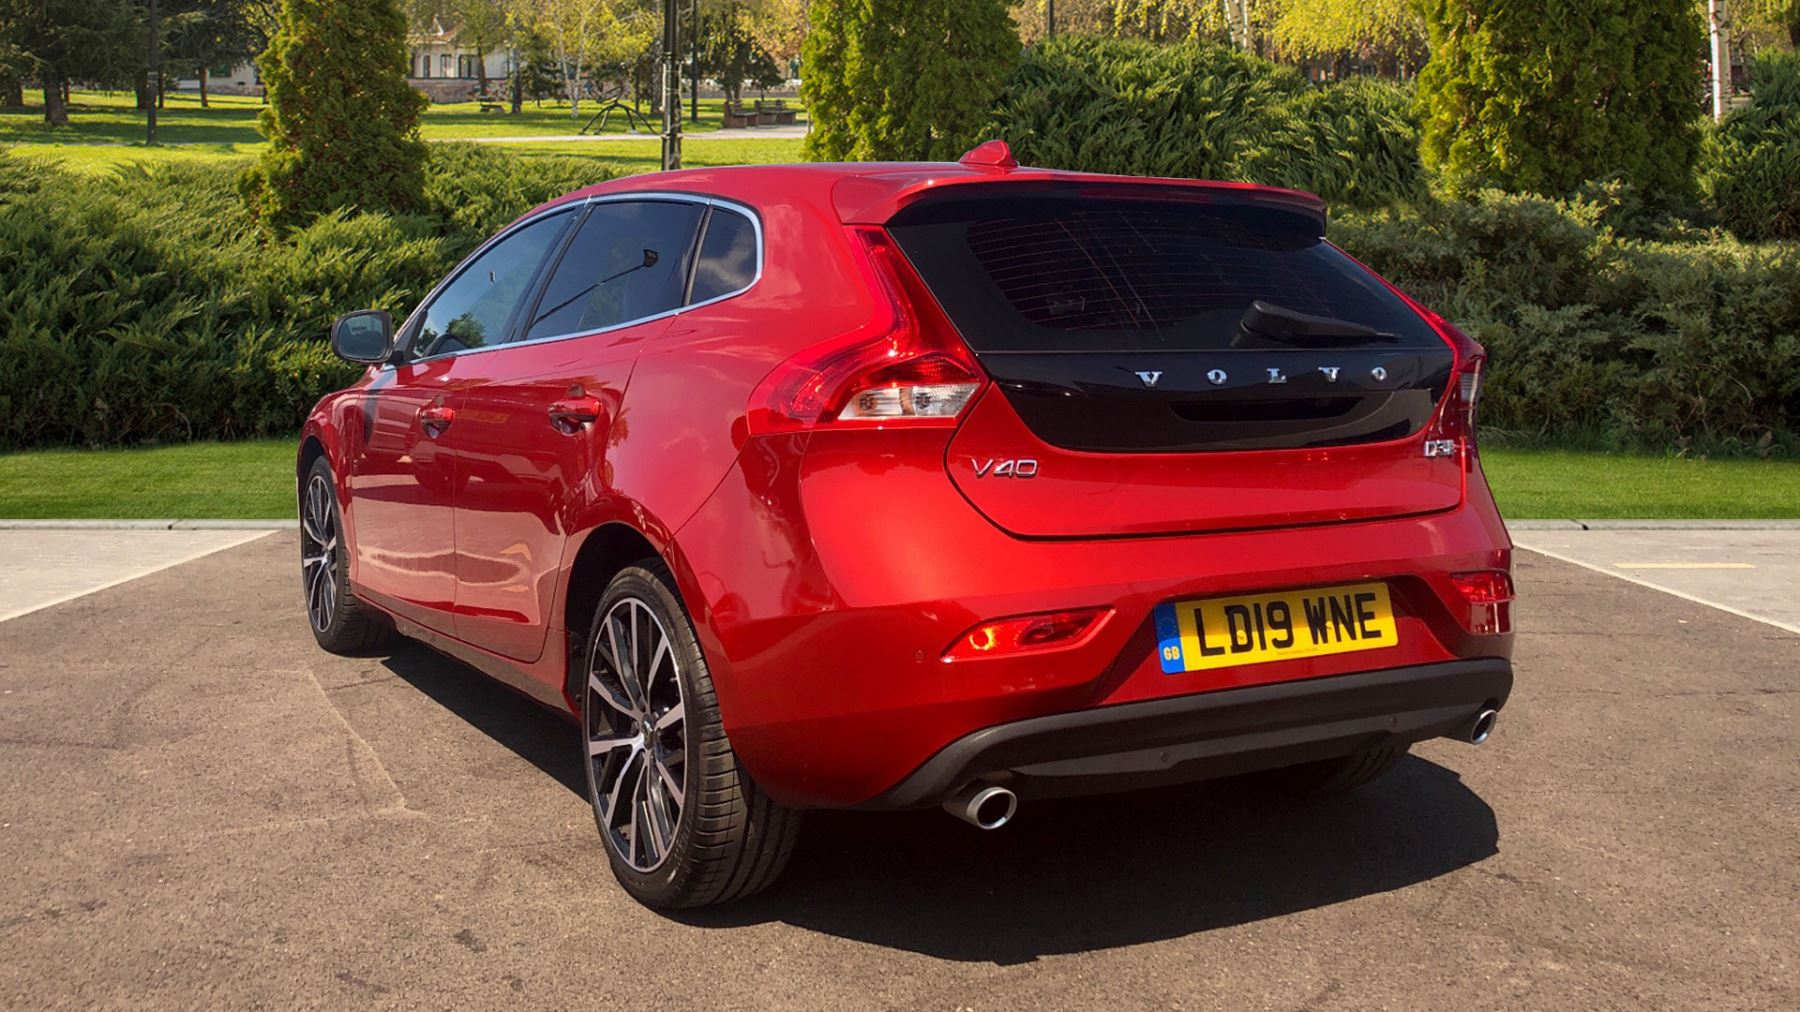 Volvo V40 D3 Euro 6 150hp Inscription Nav Auto with Panoramic Glass Roof,  Winter Plus & Xenium Pack 2 0 Diesel Automatic 5 door Hatchback (2019)